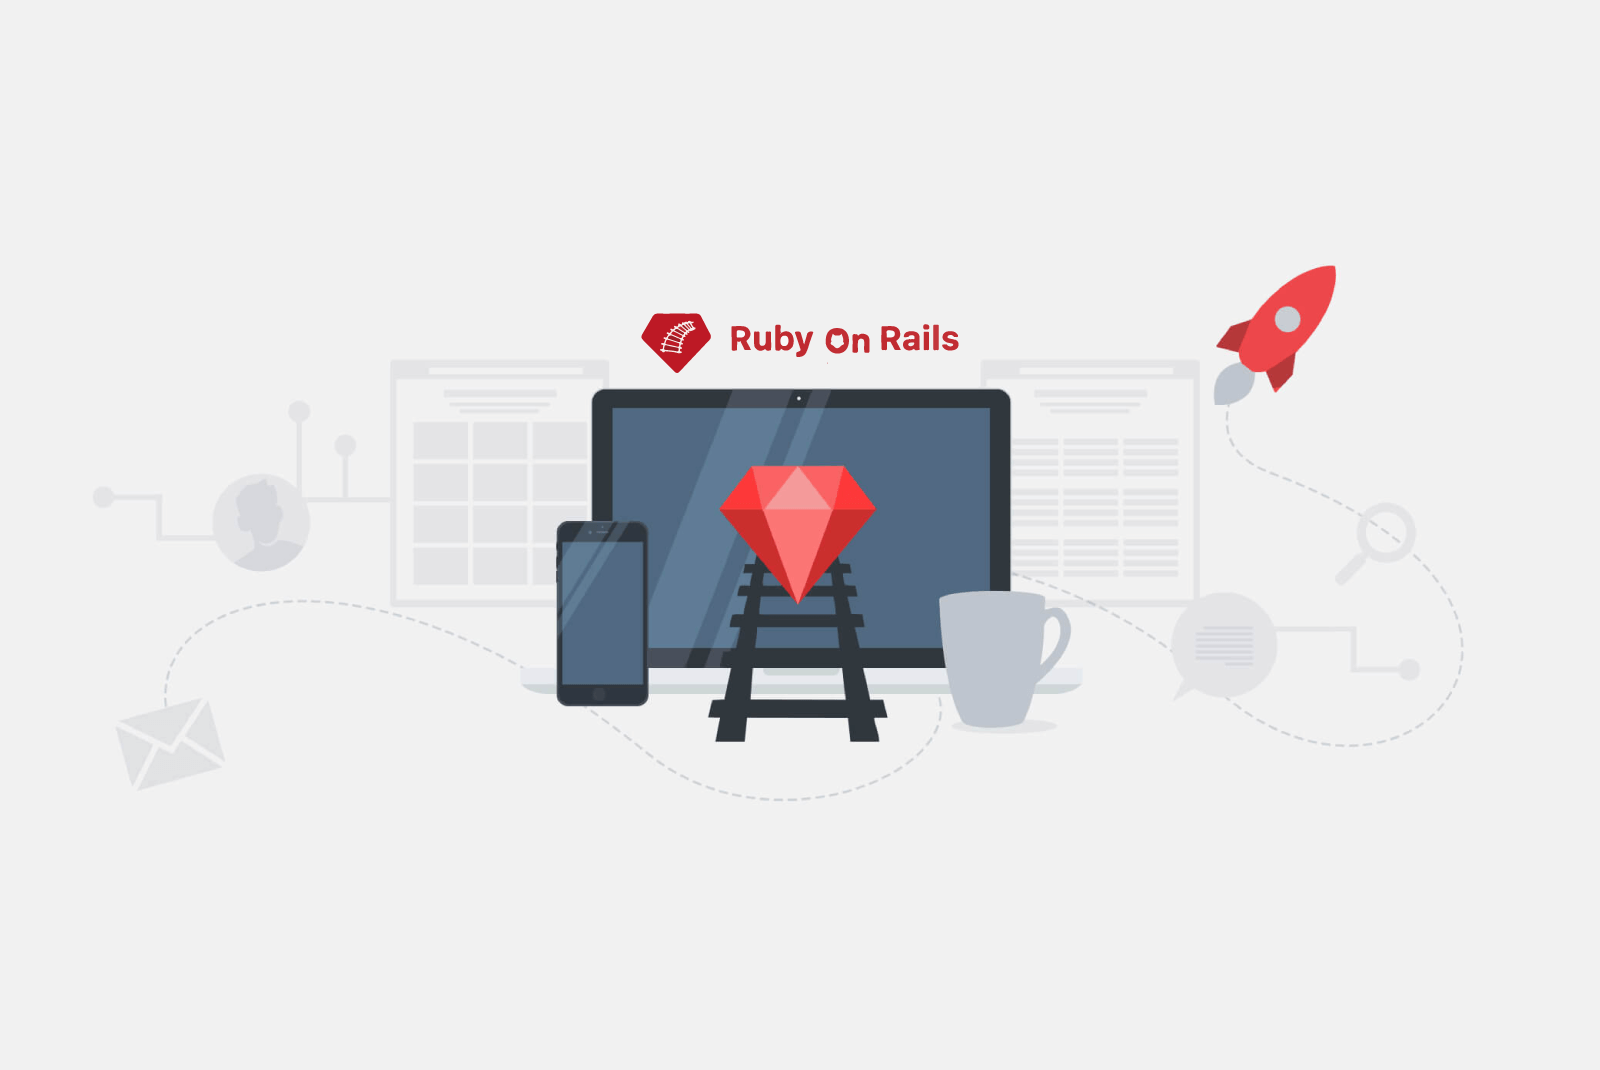 Offshore ruby on rails development service